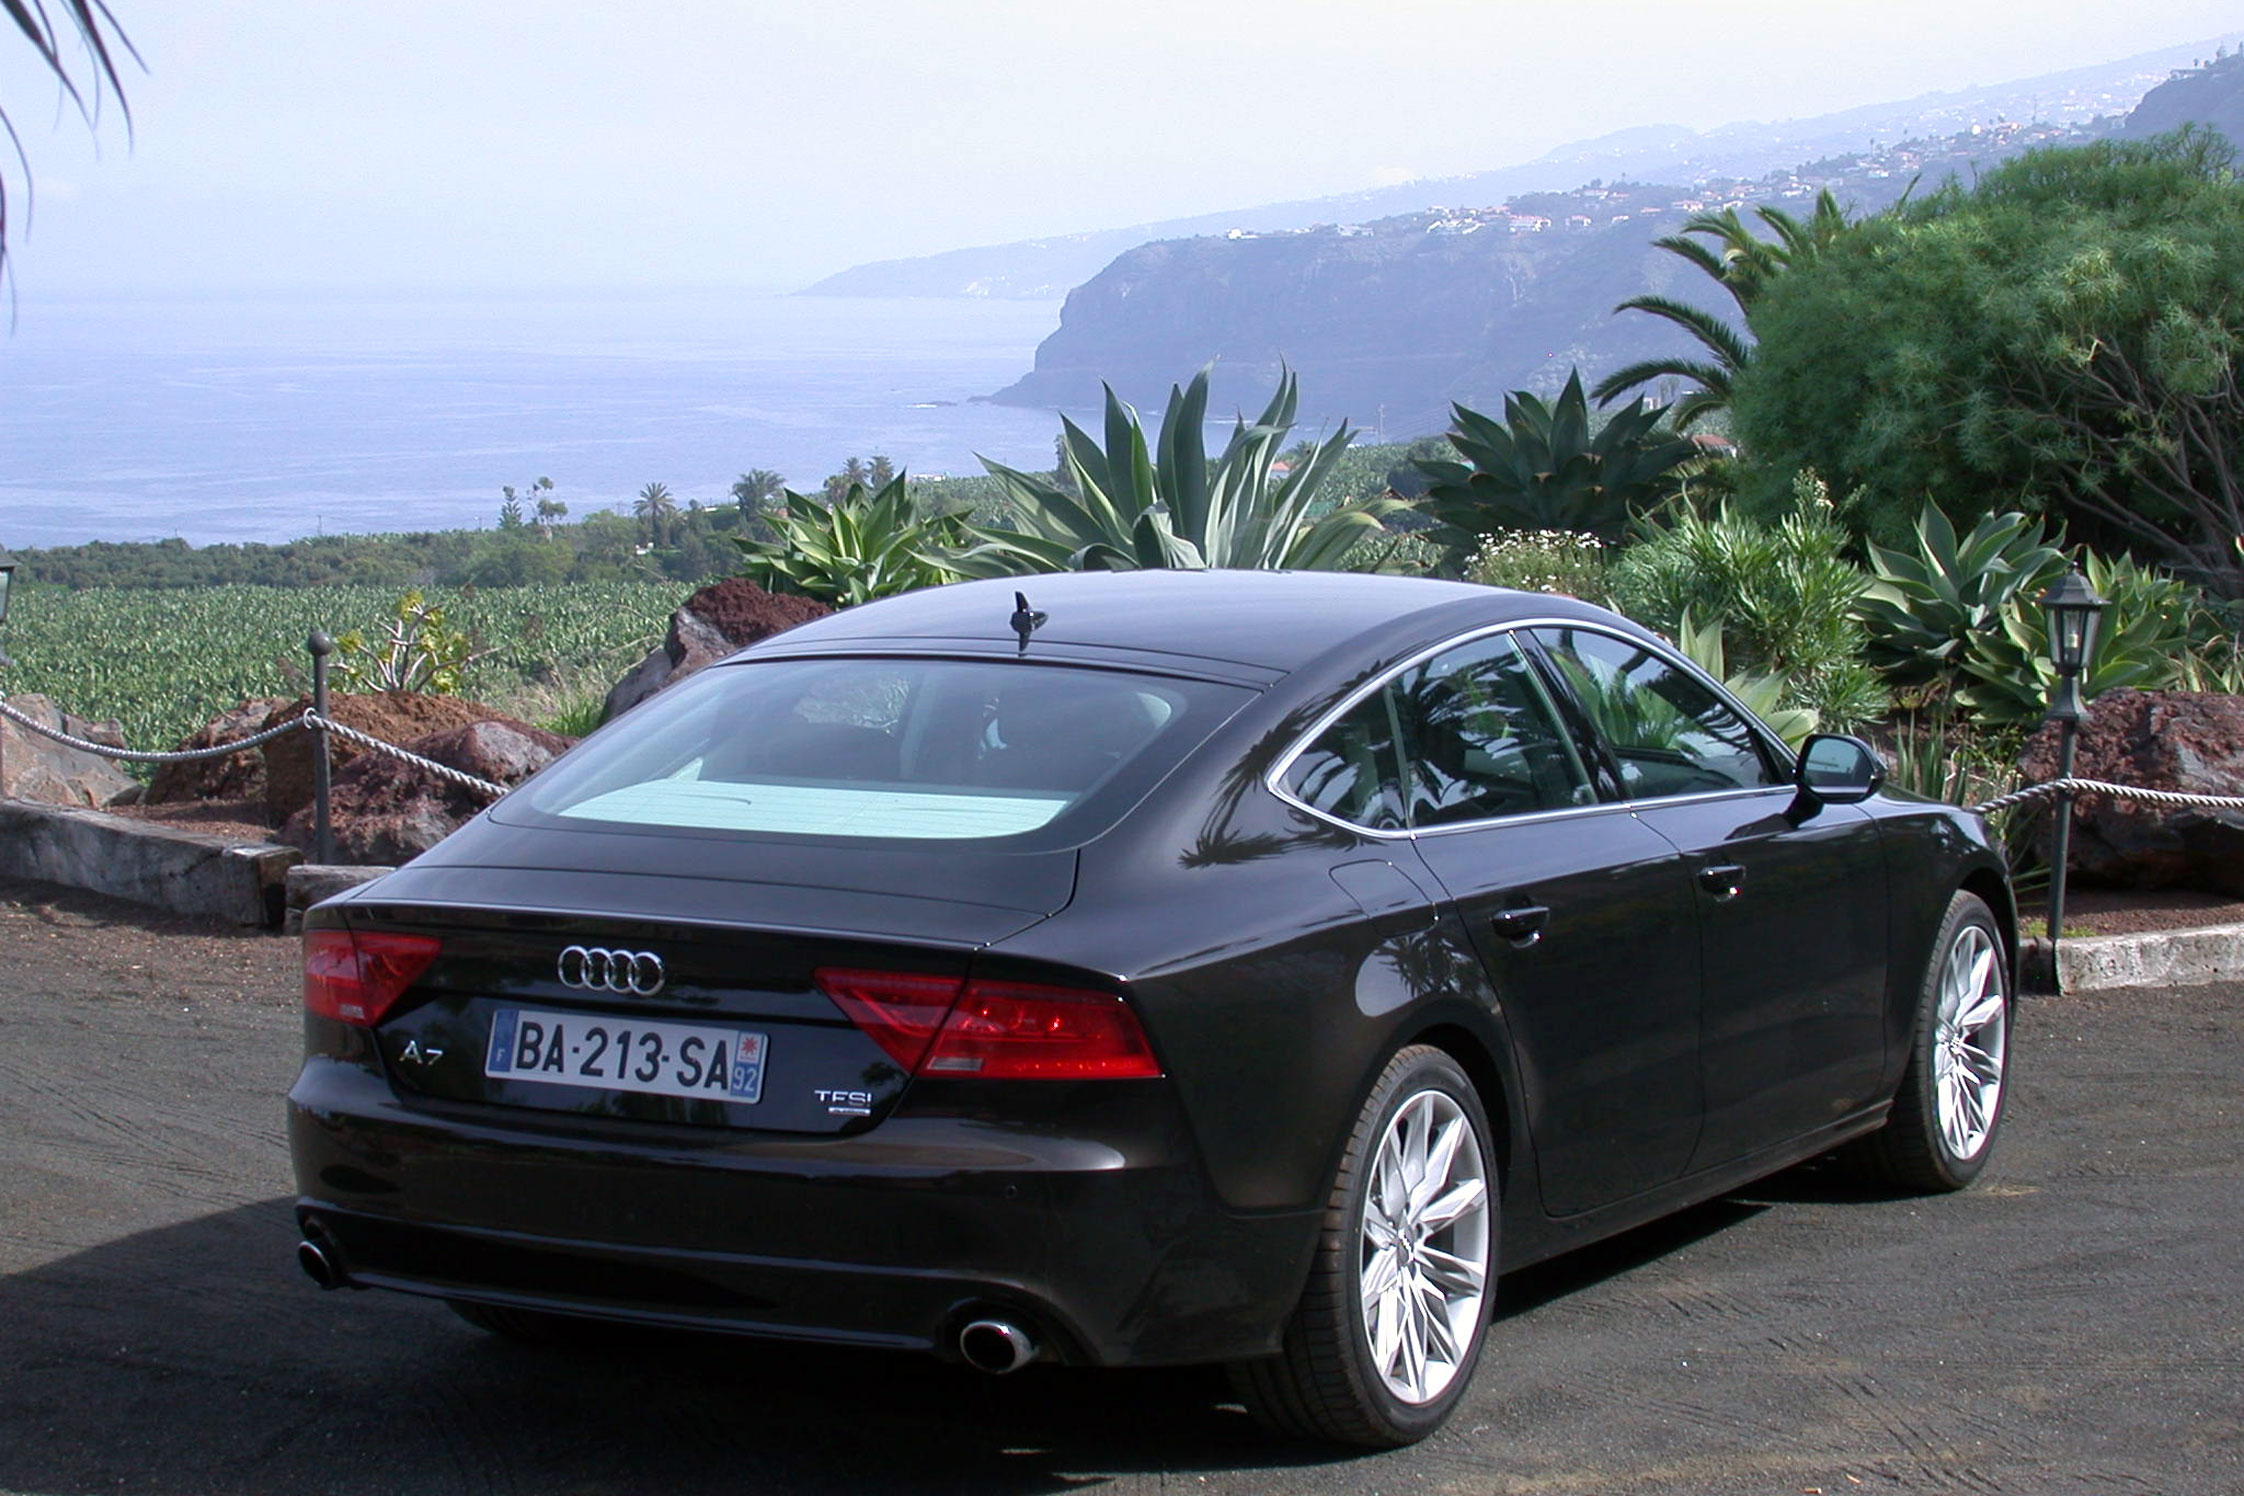 essai audi a7 sportback motorlegend. Black Bedroom Furniture Sets. Home Design Ideas